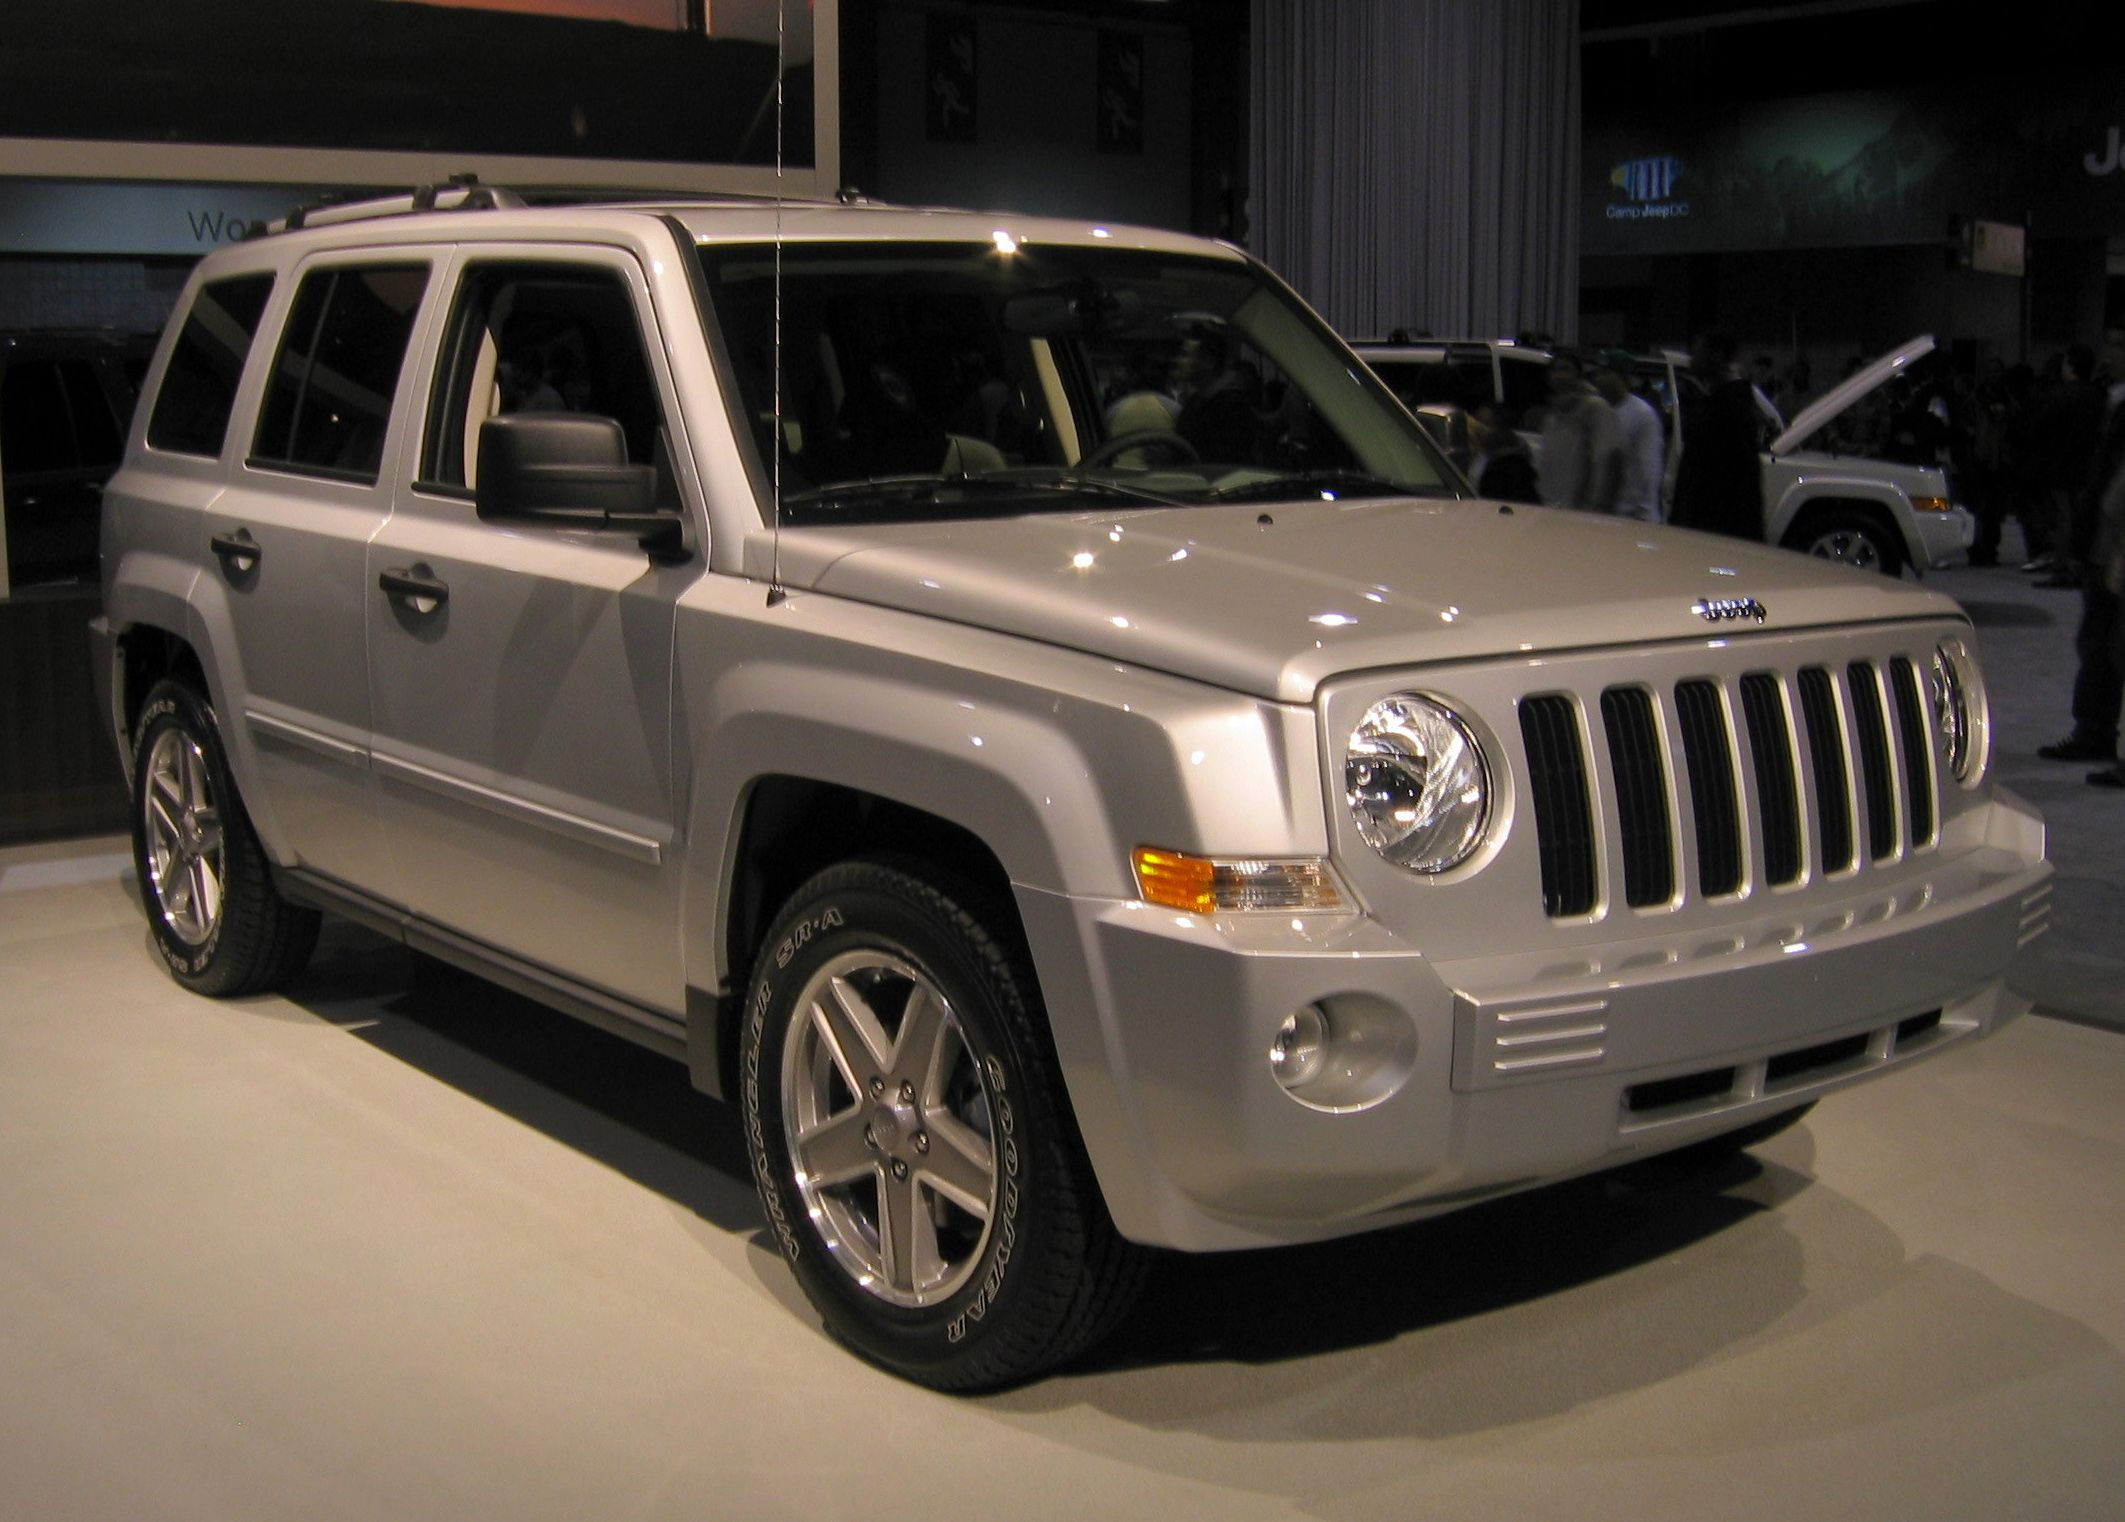 jeep patriot: my car. it's a jeep thing - you wouldn't understand